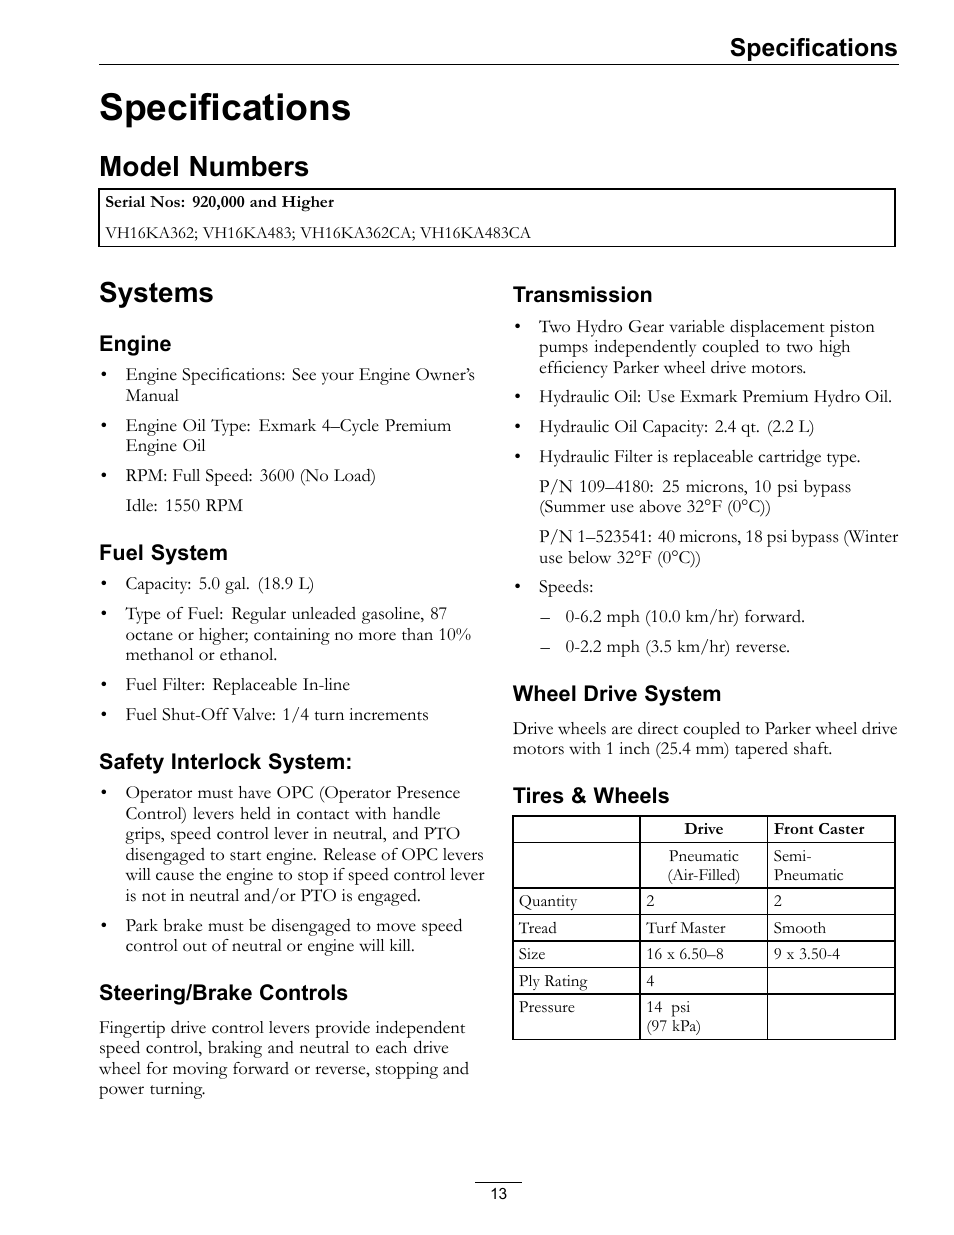 Specifications, Model numbers systems, Model numbers | Exmark Viking